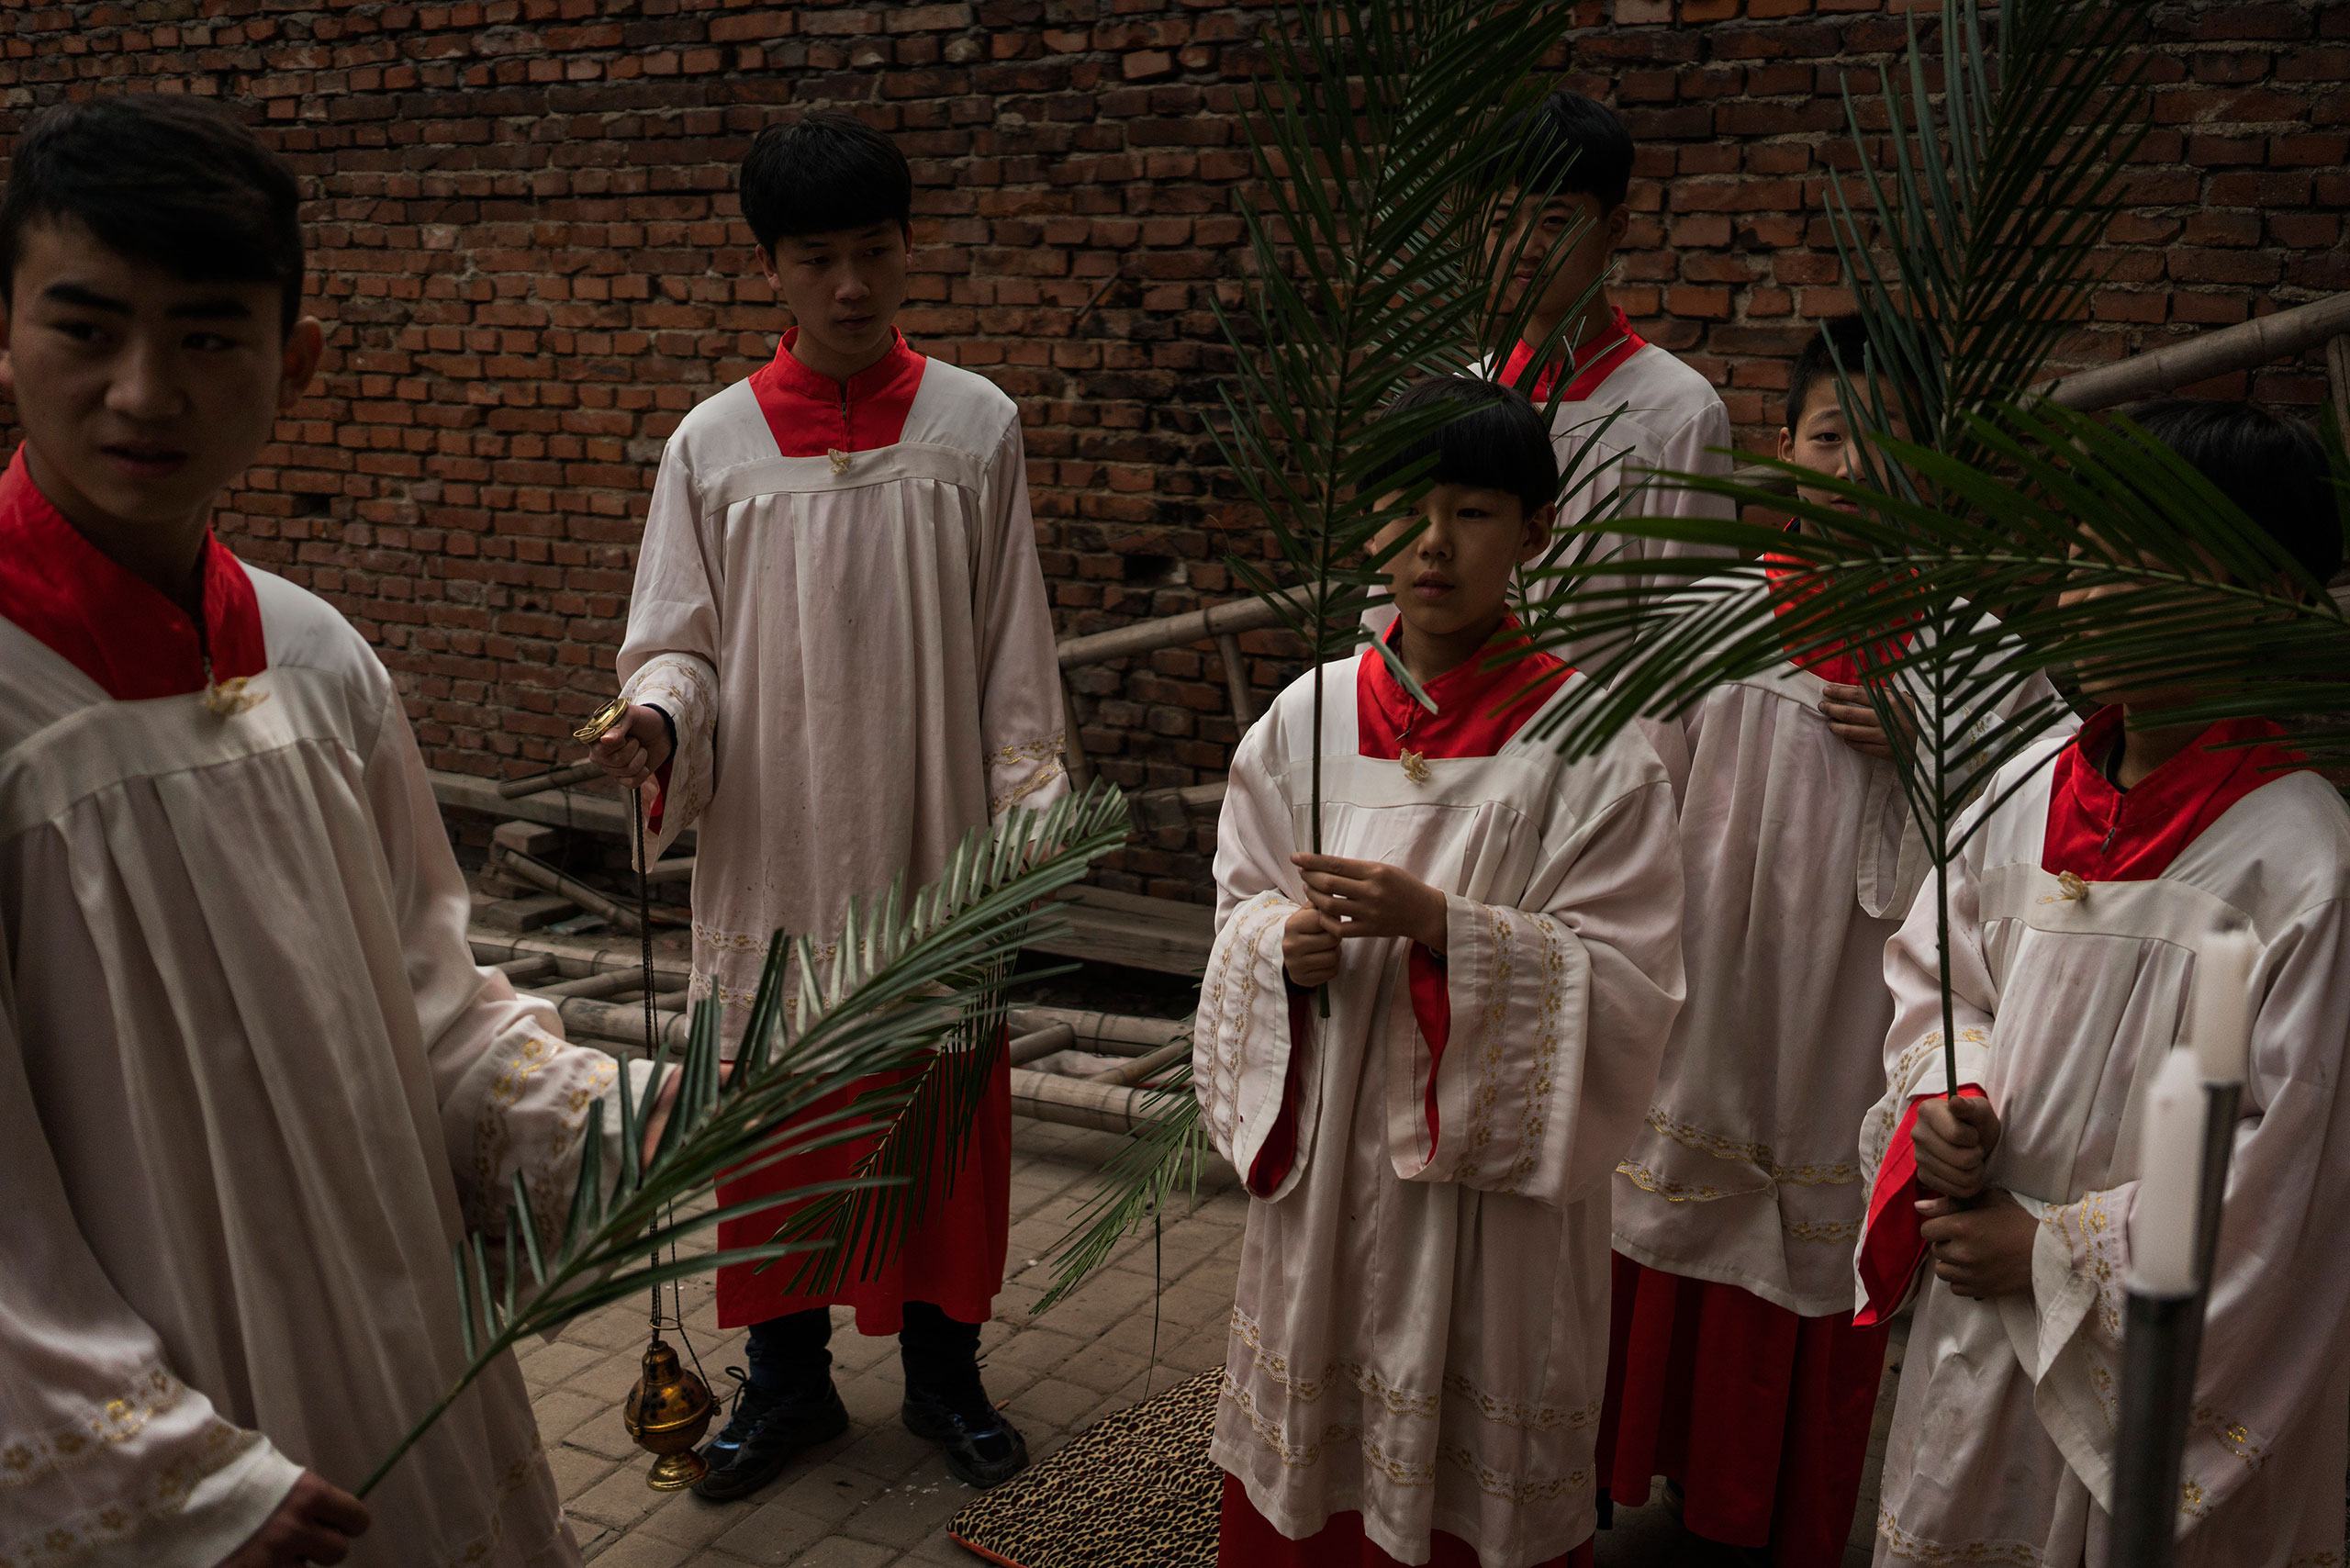 Altar boys prepare for an underground Palm Sunday service in the yard of a house in Youtong village, Shijiazhuang, China, March 20, 2016.